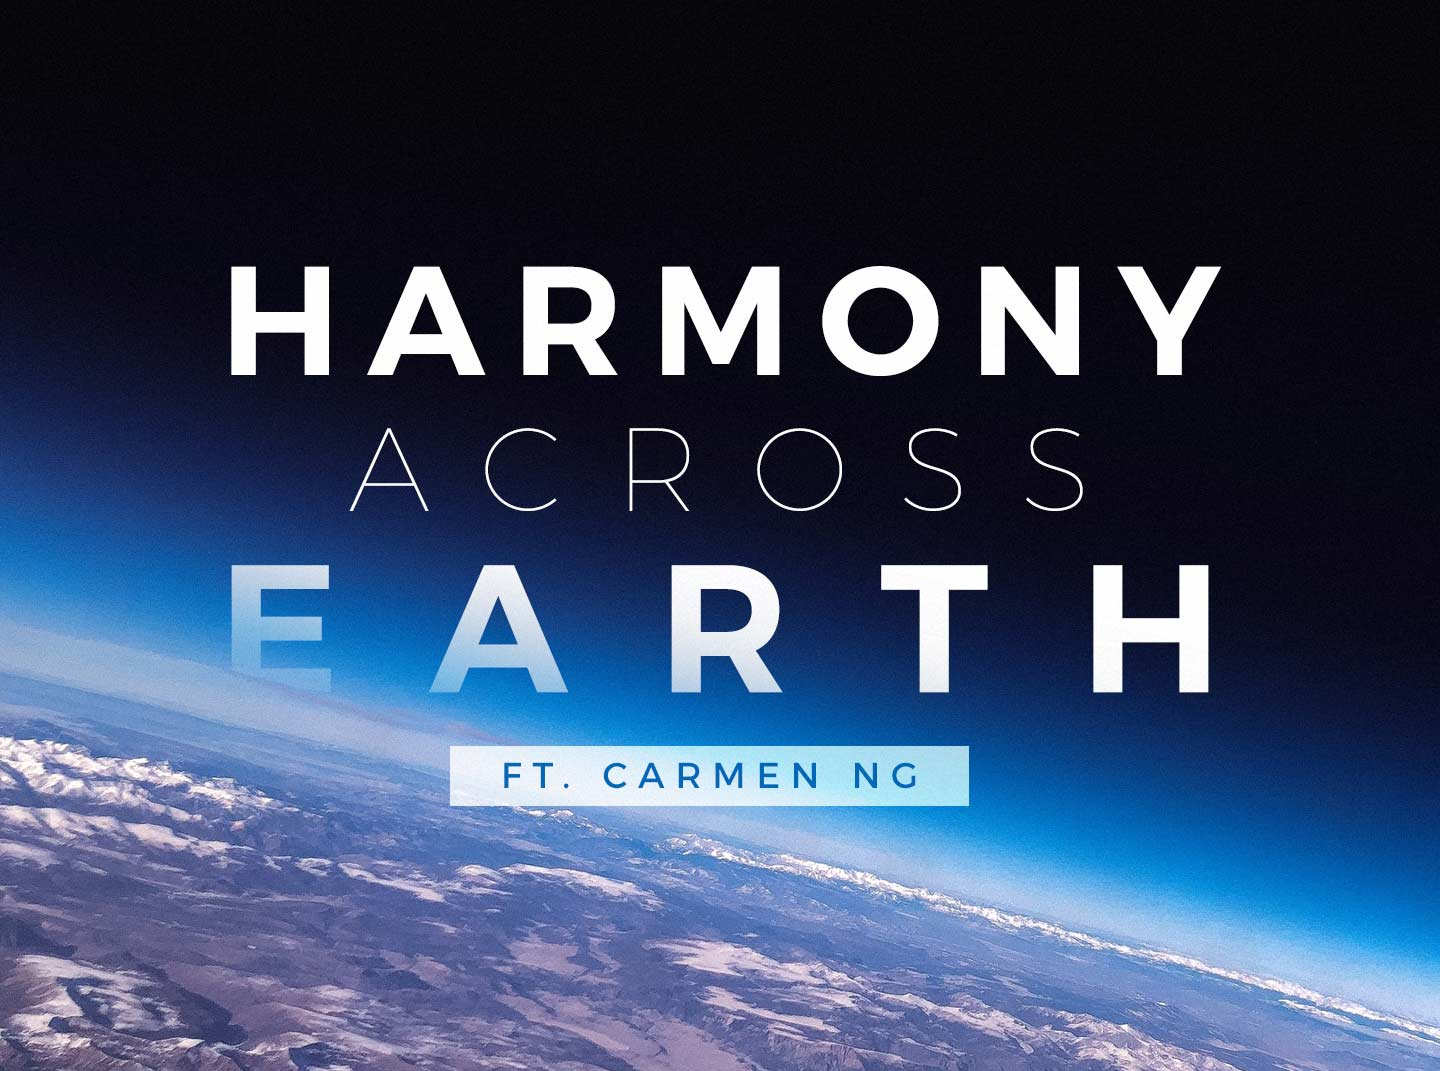 Harmony Across Earth